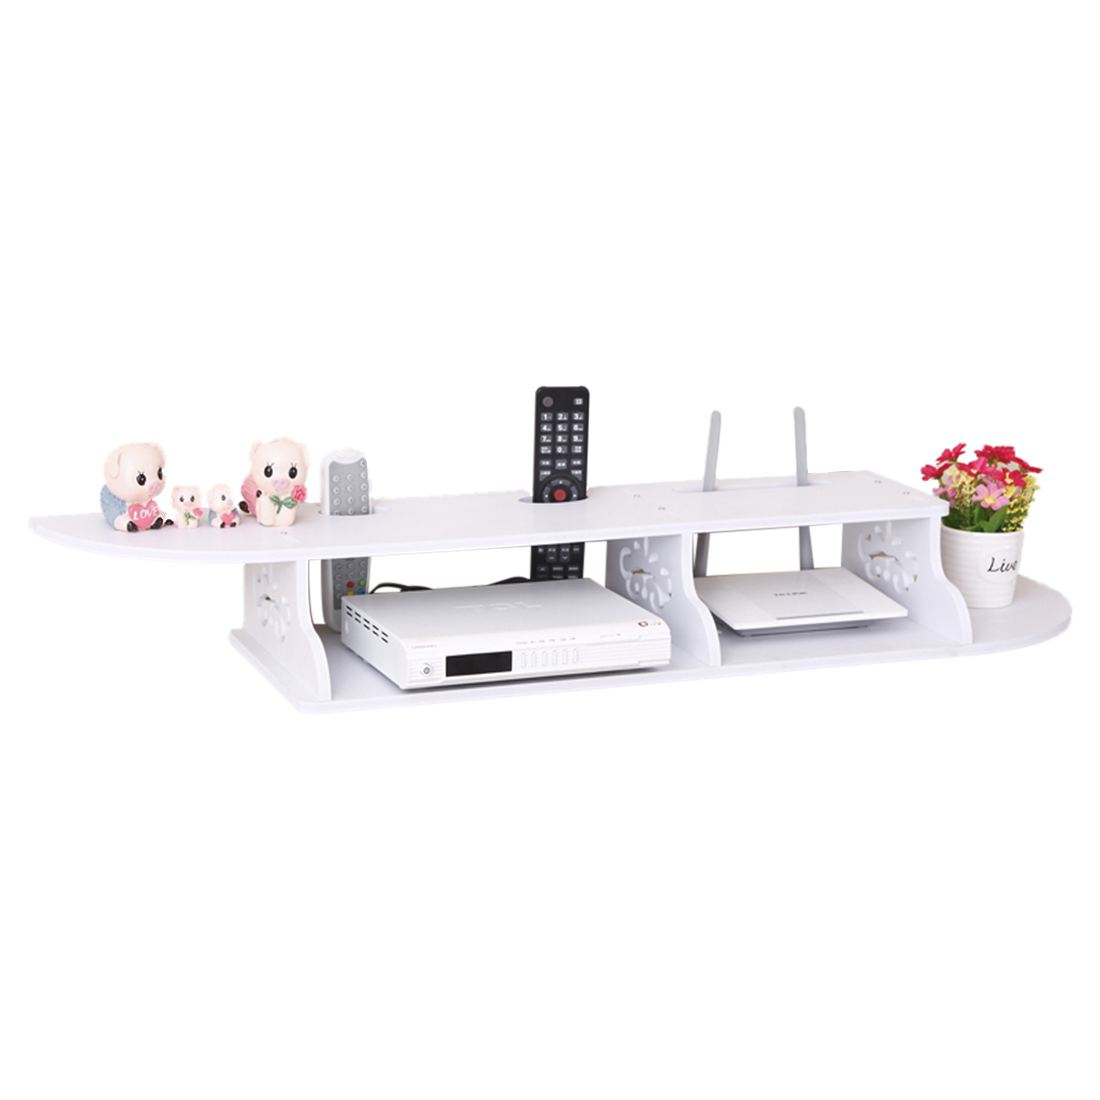 Hollow Carved 2 Tier Floating Wall Shelves Skybox CD DVD Bookcase Storage Unit- white<br>